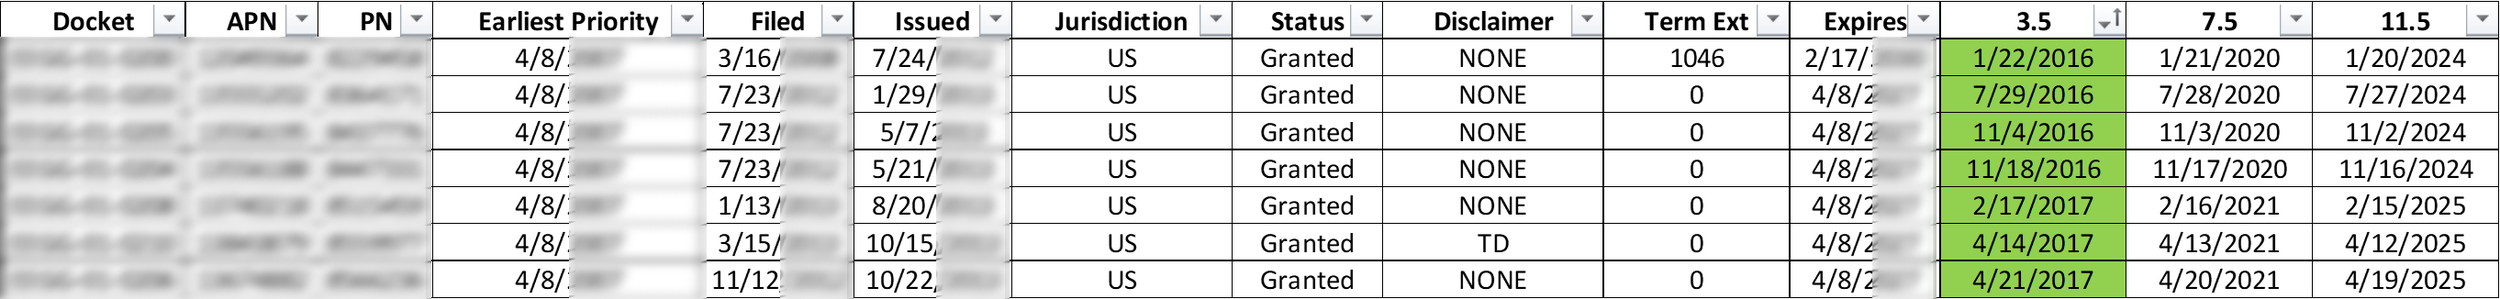 An example portion of a Term and Maintenance Fee Tracking spreadsheet (partially redacted).